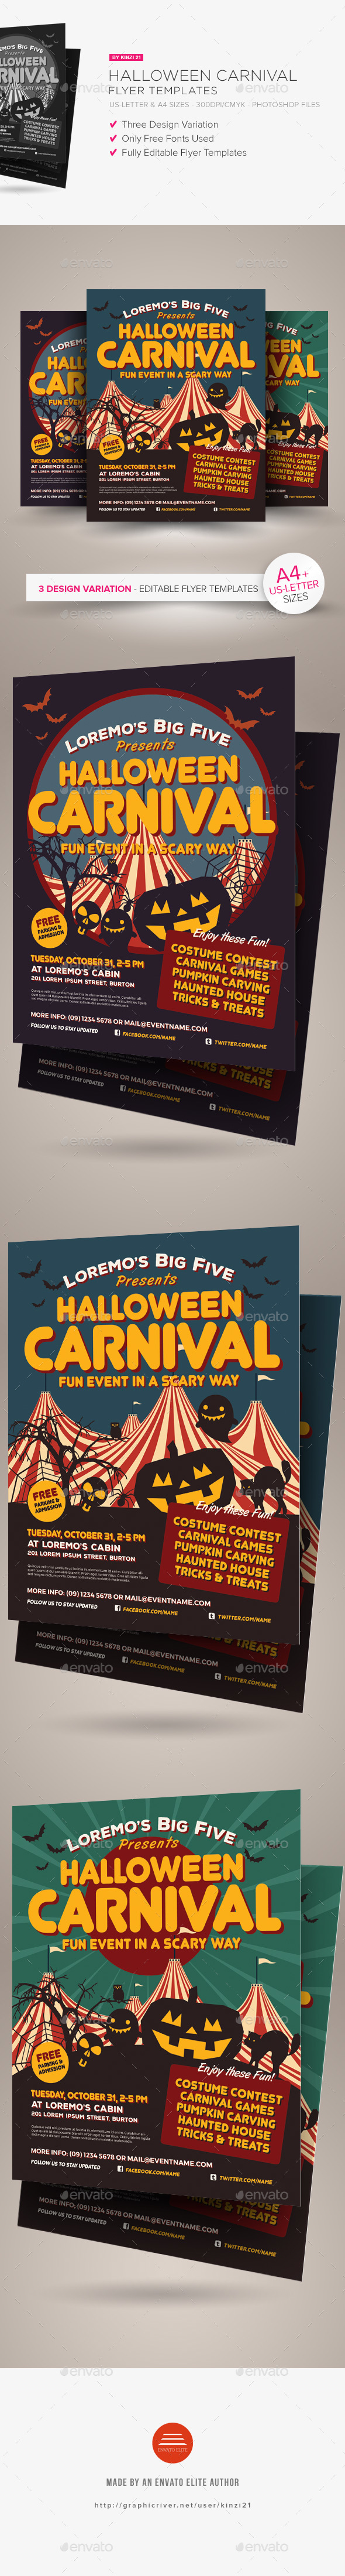 Halloween Carnival Flyer Templates - Holidays Events